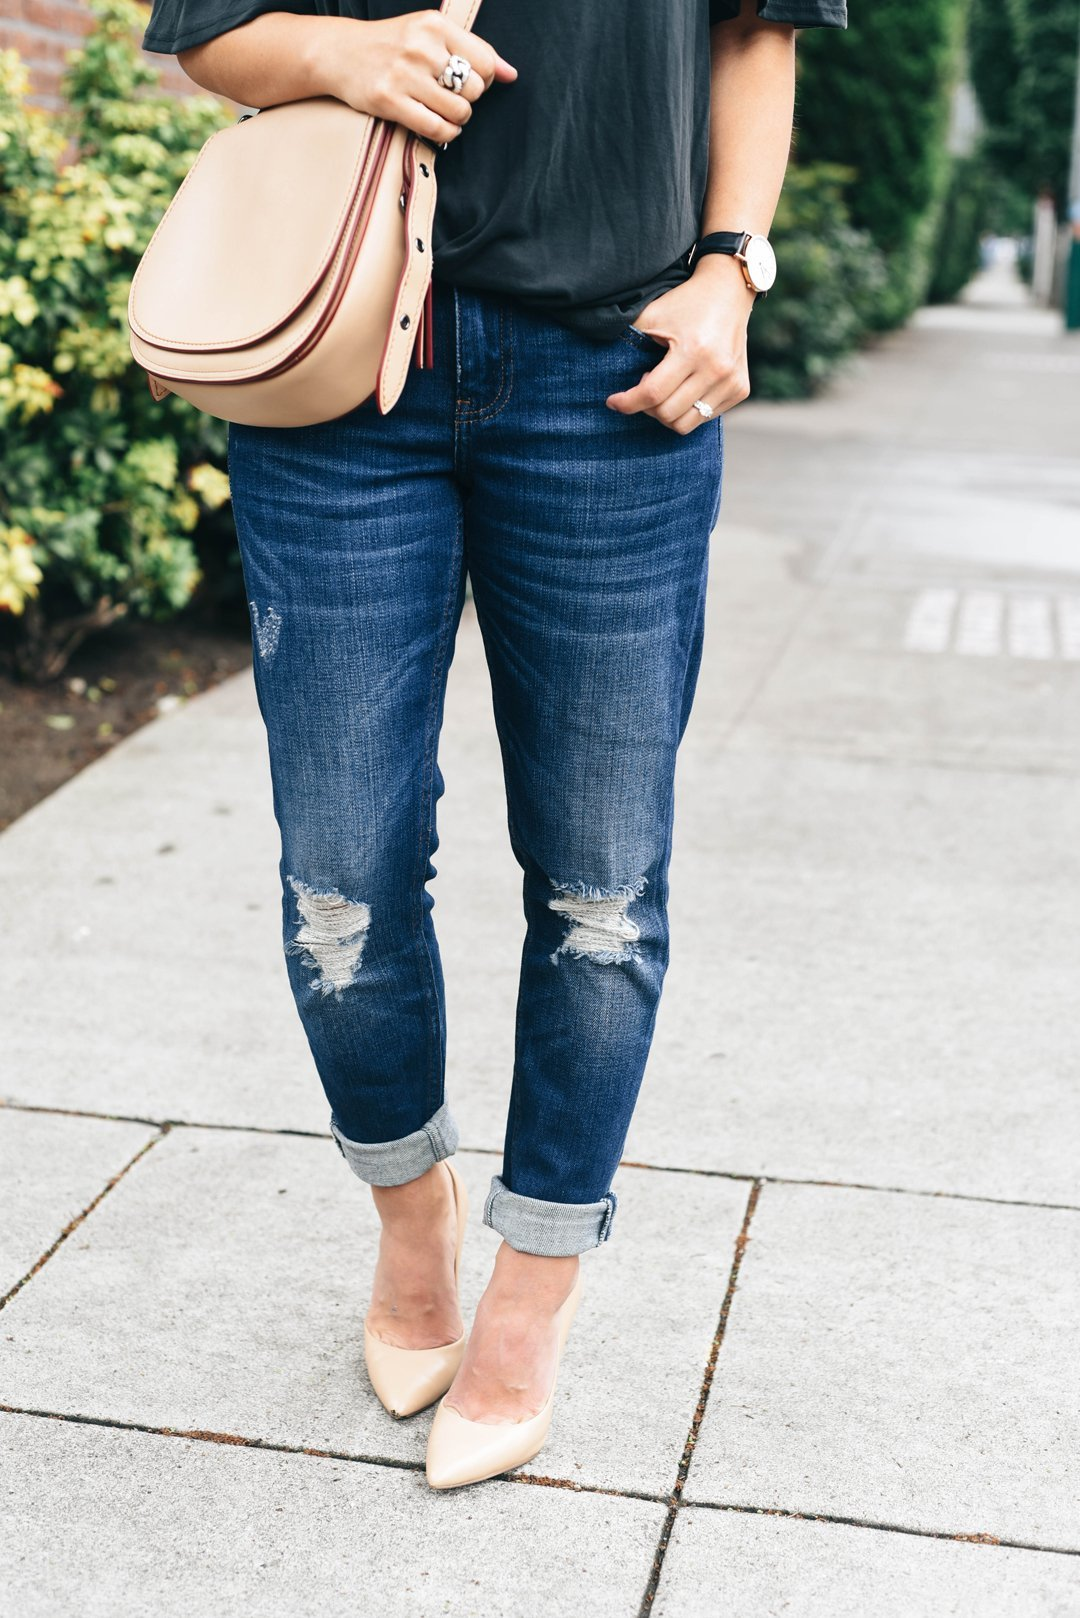 Crystalin Marie wearing Topshop 'Lucus' Ripped Boyfriend Jeans